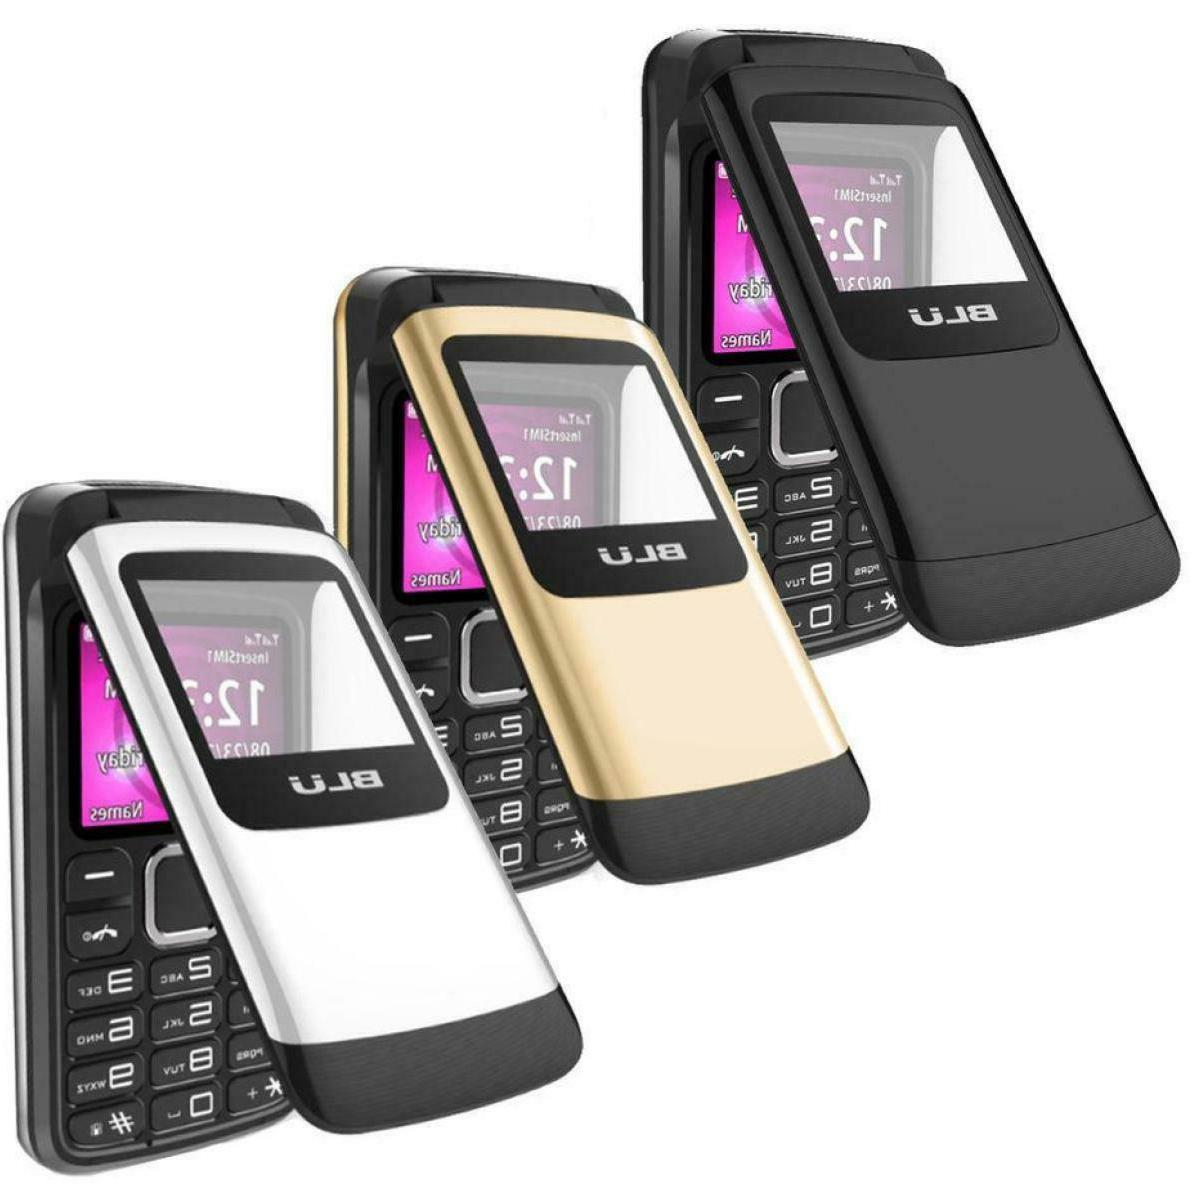 zoey flex 3g factory gsm unlocked at